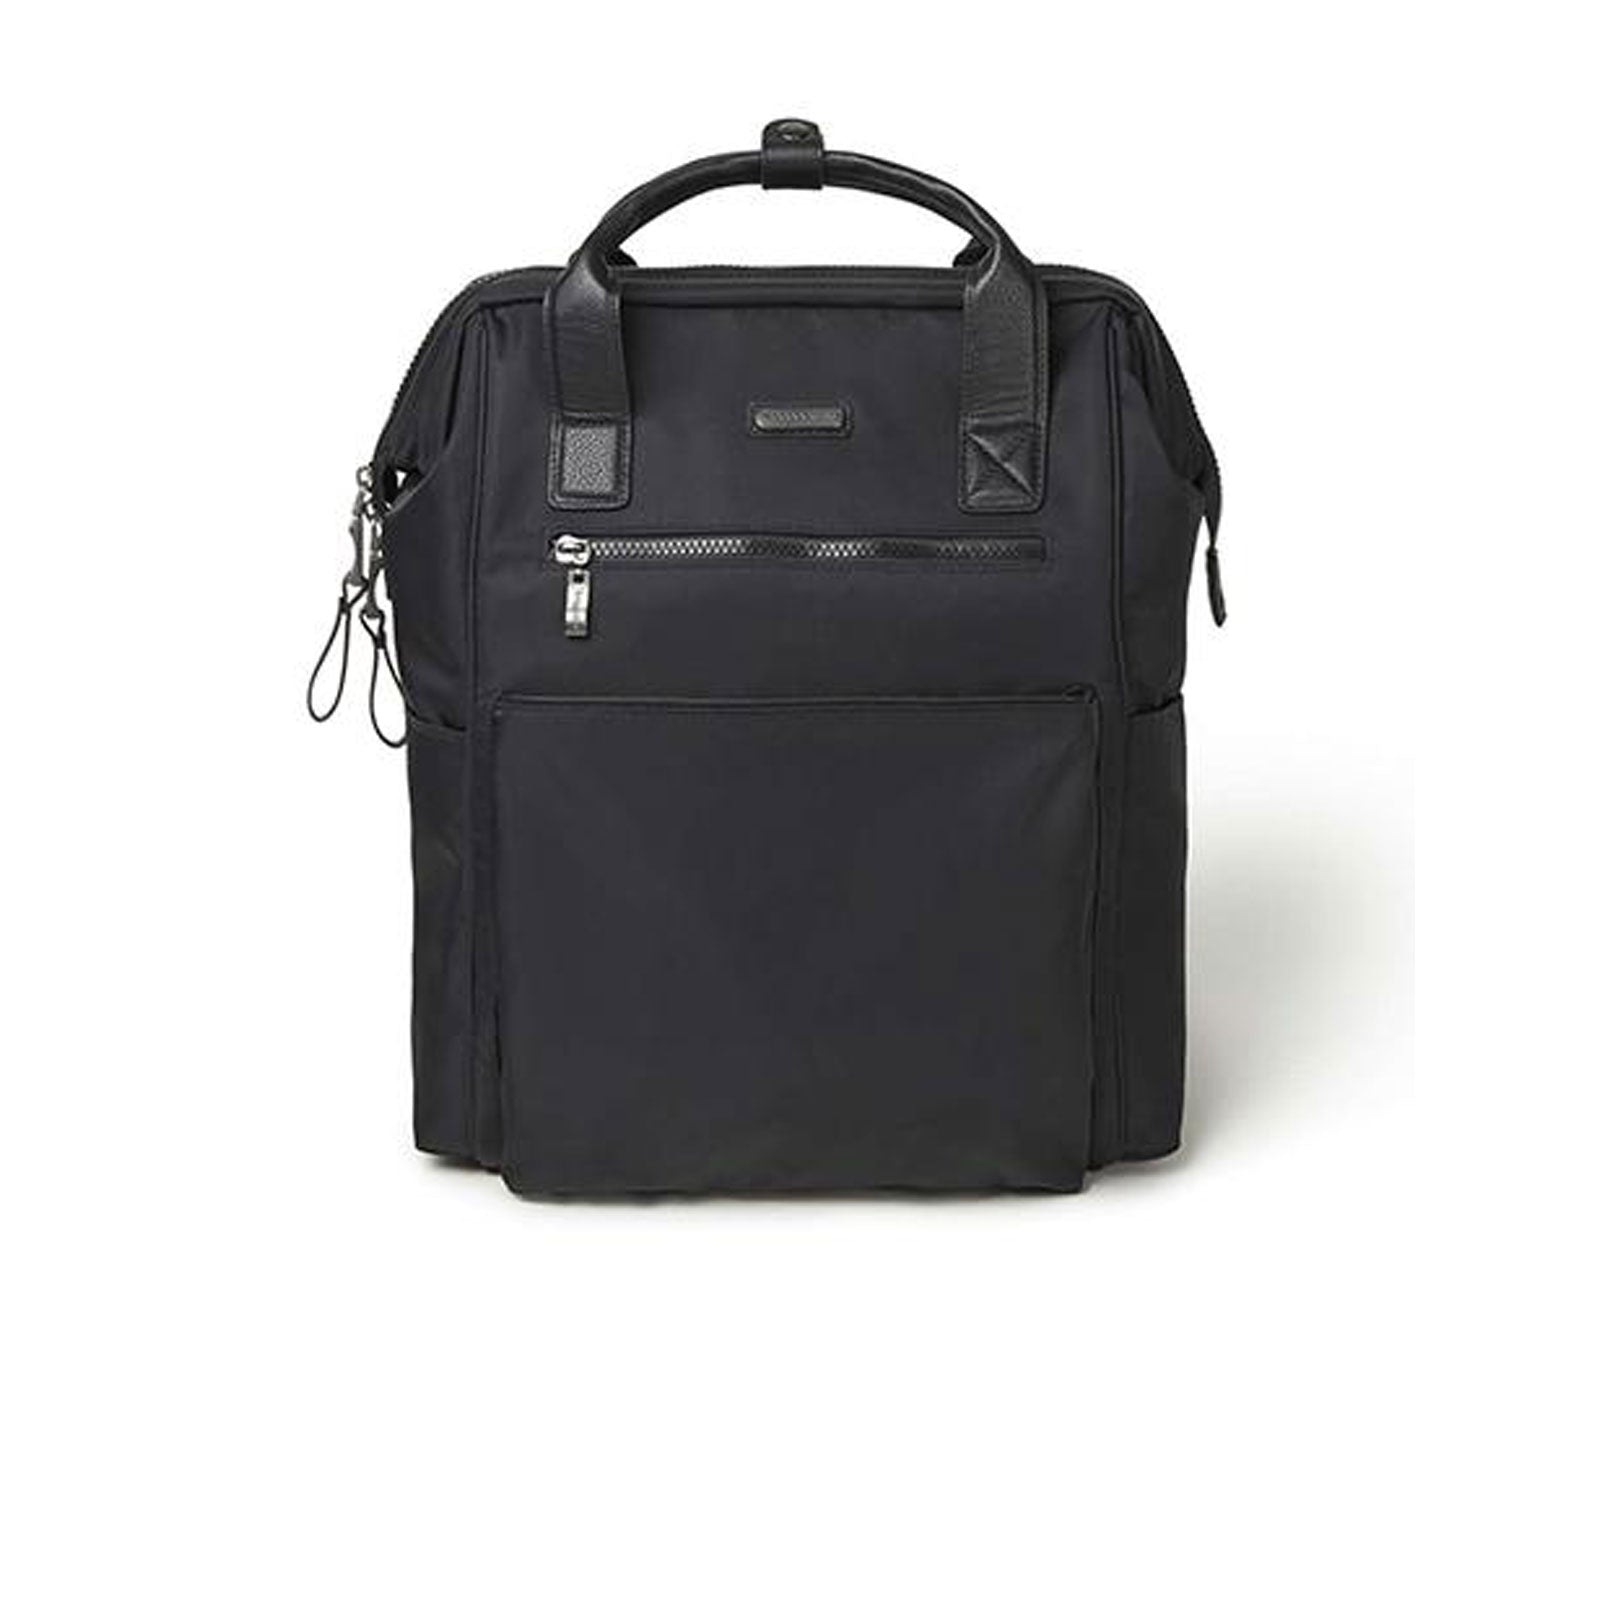 Baggallini Soho Backpack - Black